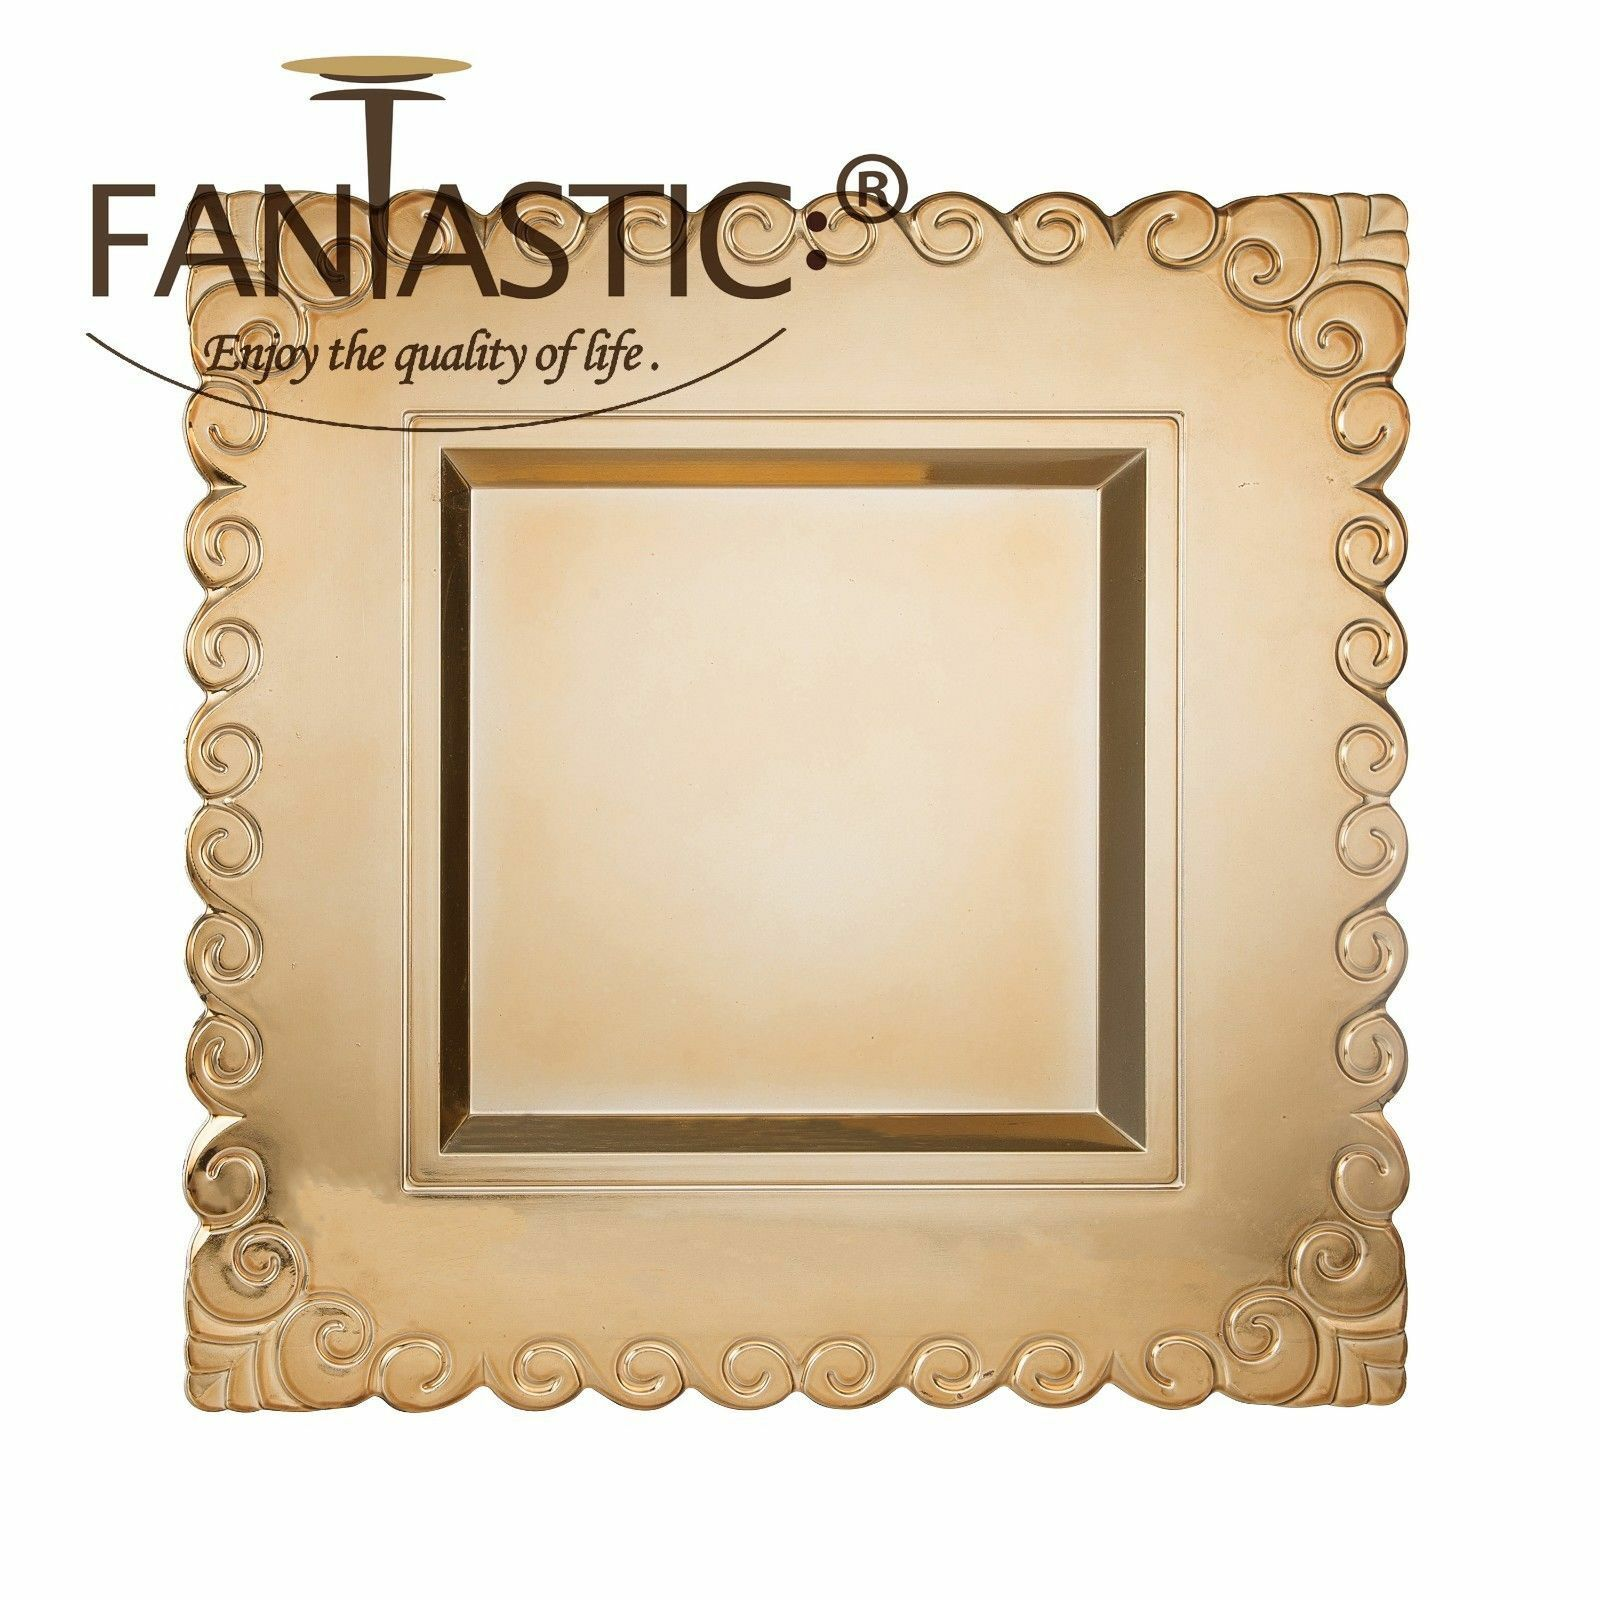 Fantastic )™ Square 13Inch Charger Plate With Shiny Finish Circle Edge Pattern